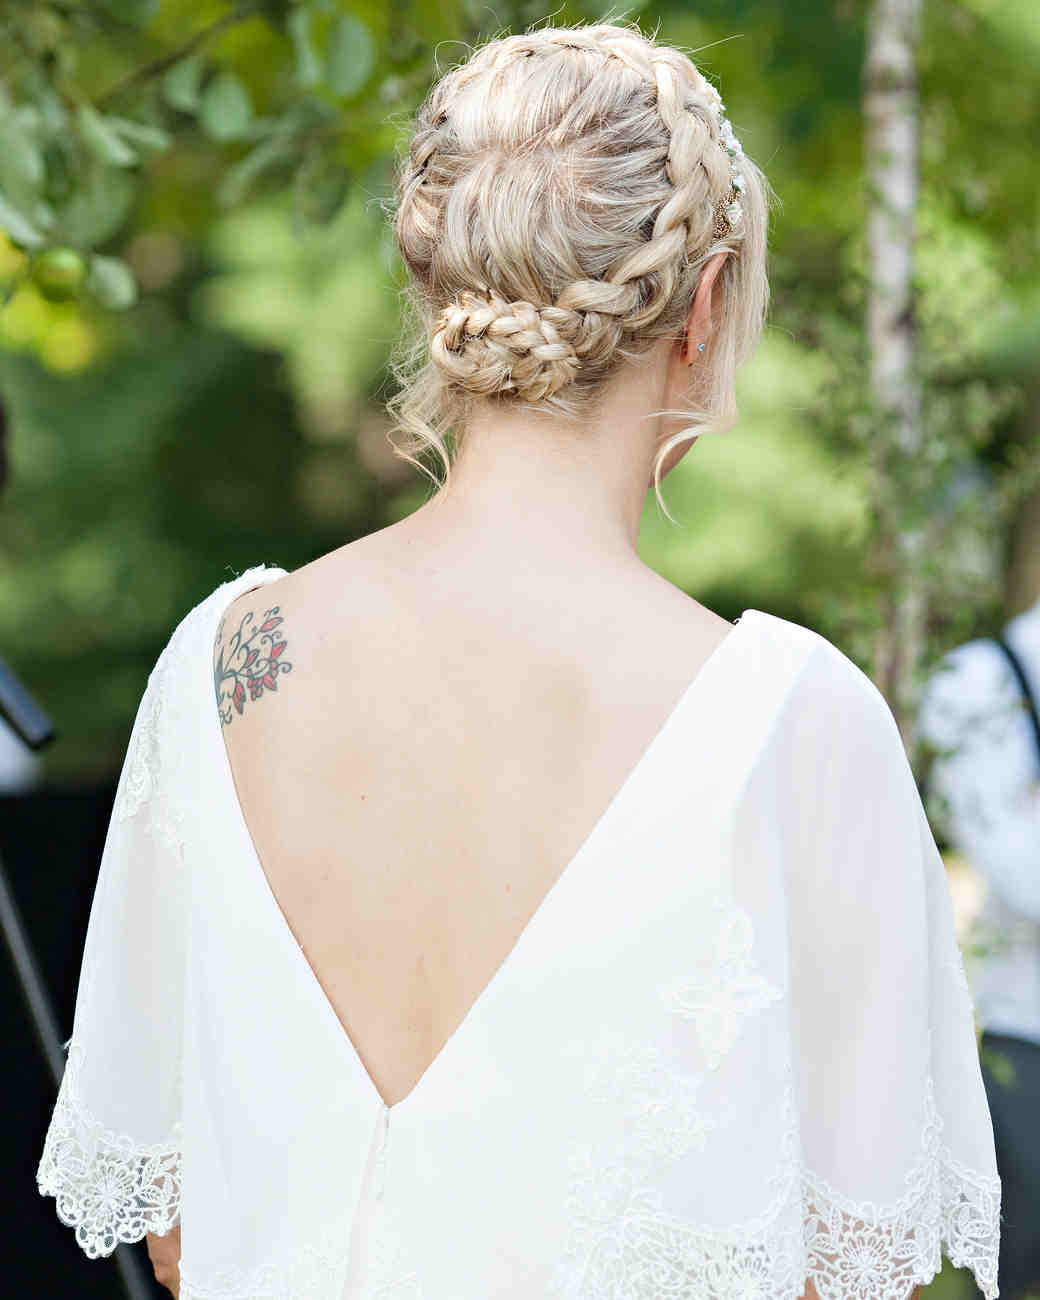 Wedding Hairstyle Photos: 29 Cool Wedding Hairstyles For The Modern Bride